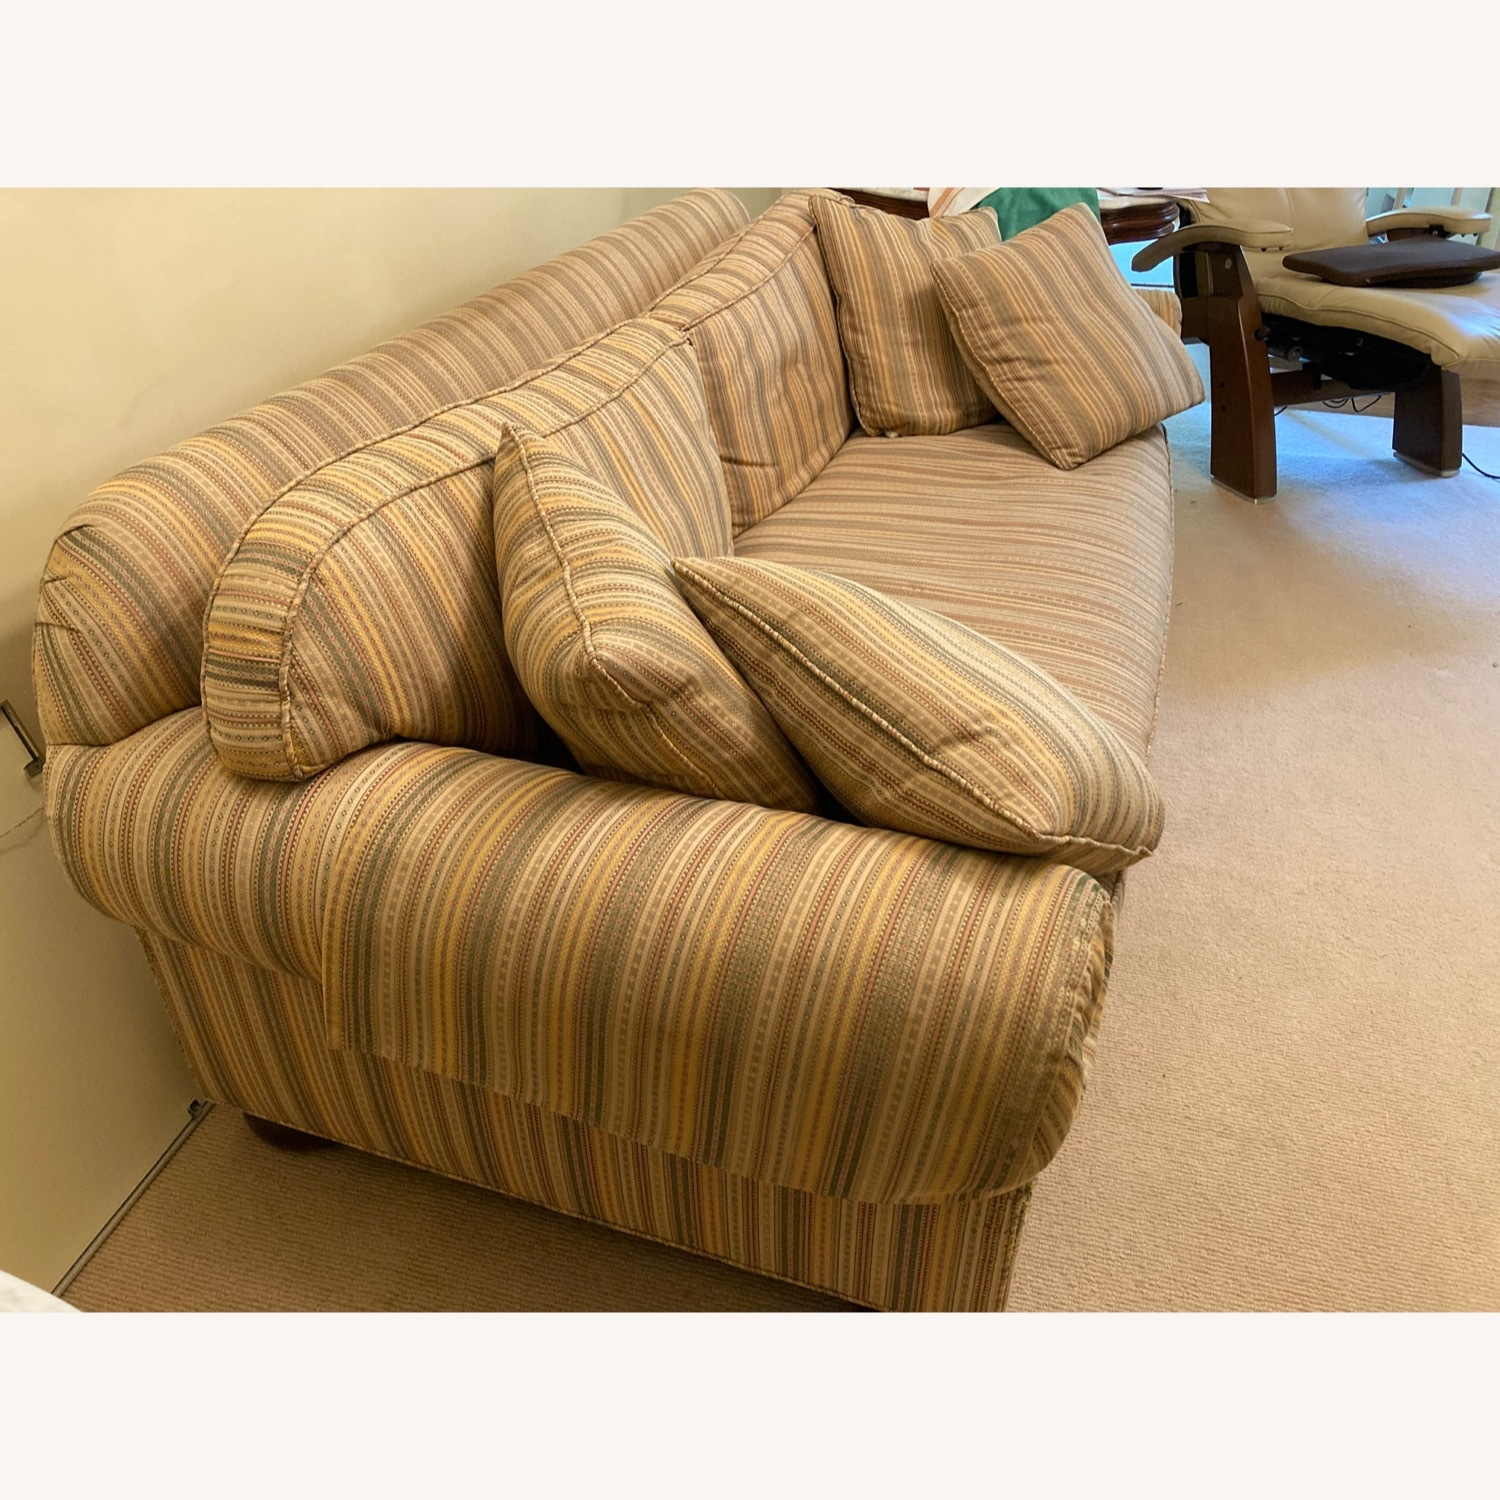 Stickley Brothers Furniture Well Made Designer Couch - image-3